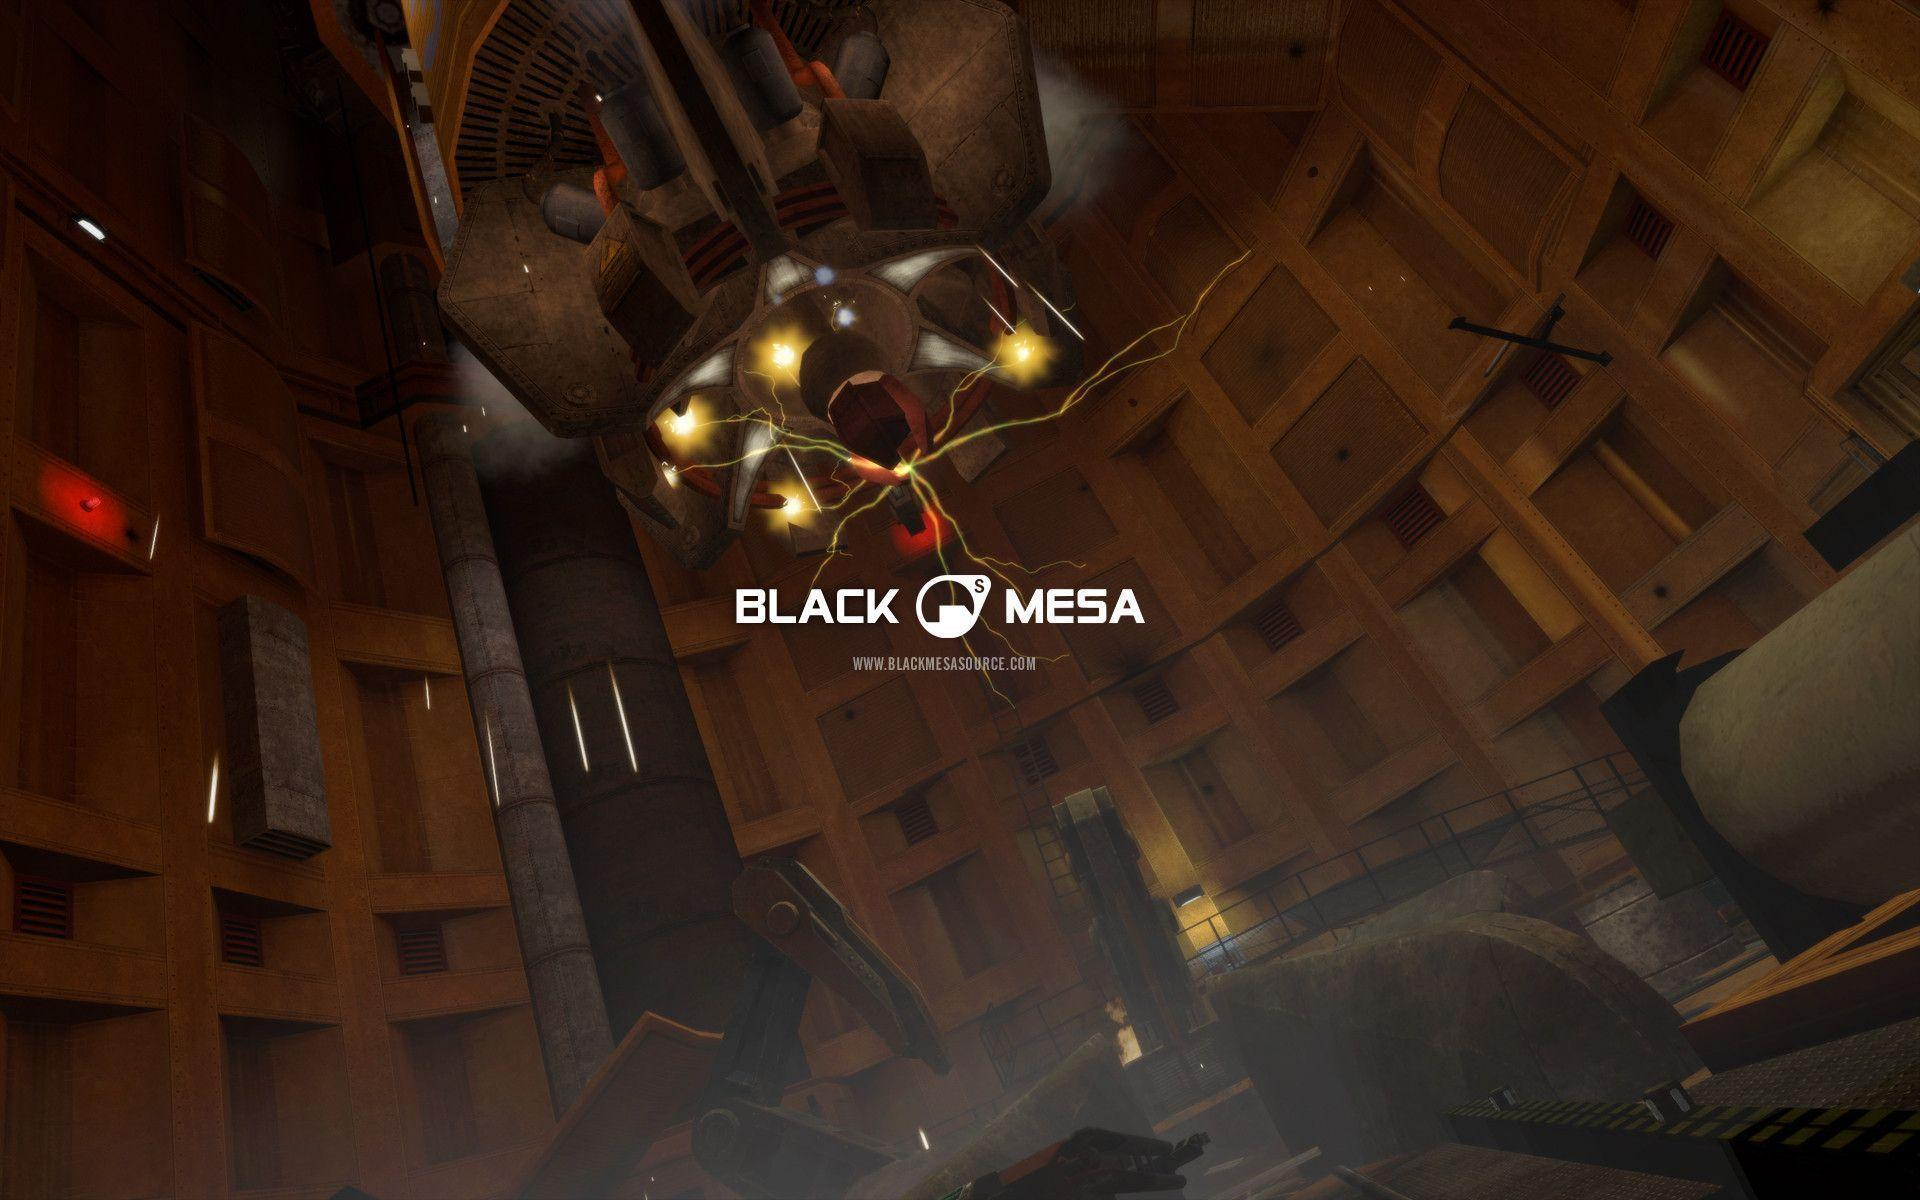 Black Mesa wallpaper - 233954